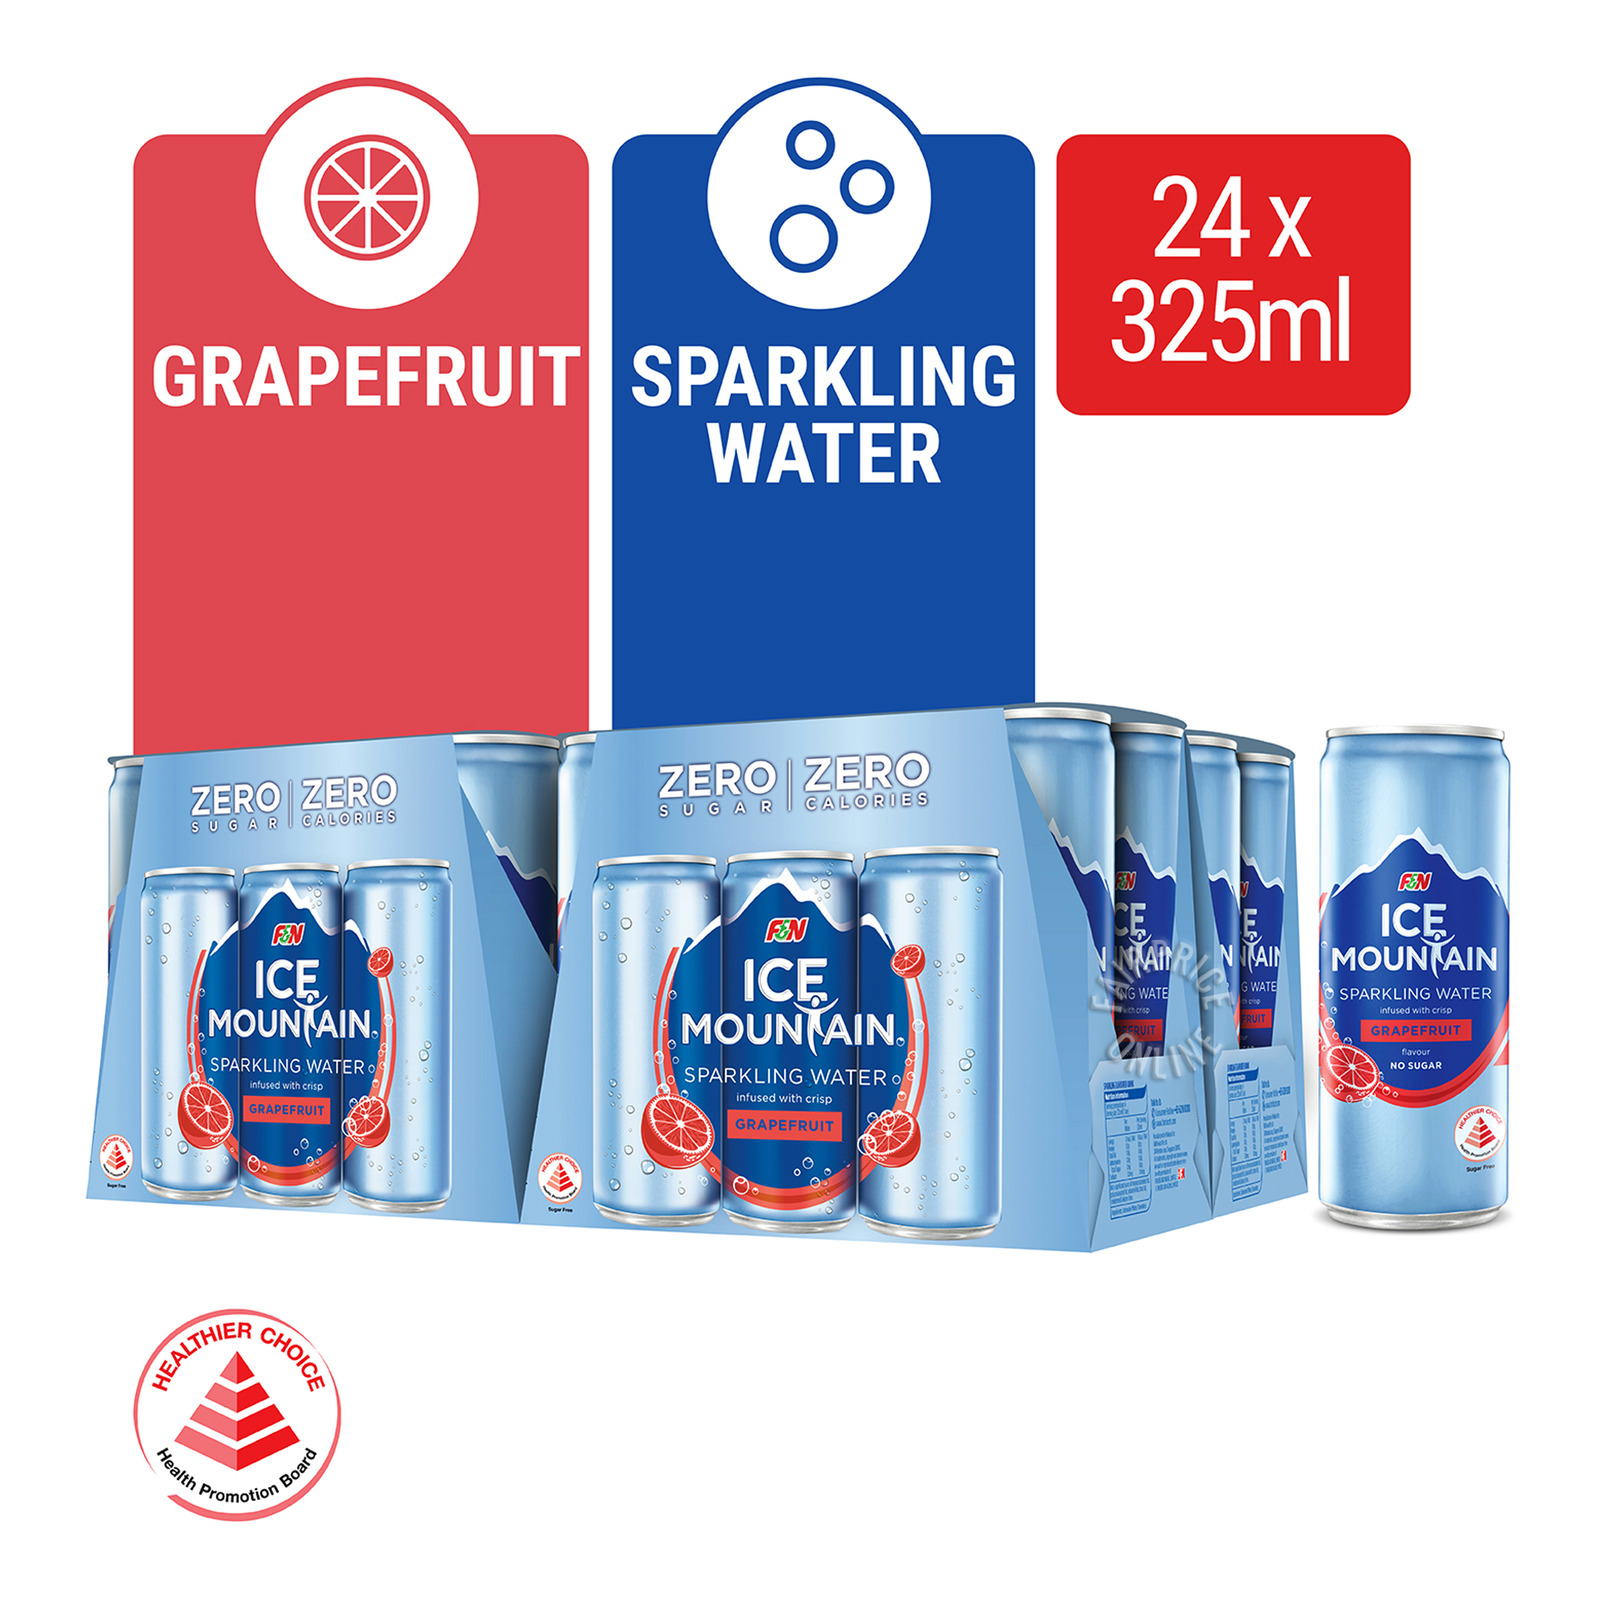 F&N Ice Mountain Sparkling Can Water - Grapefruit